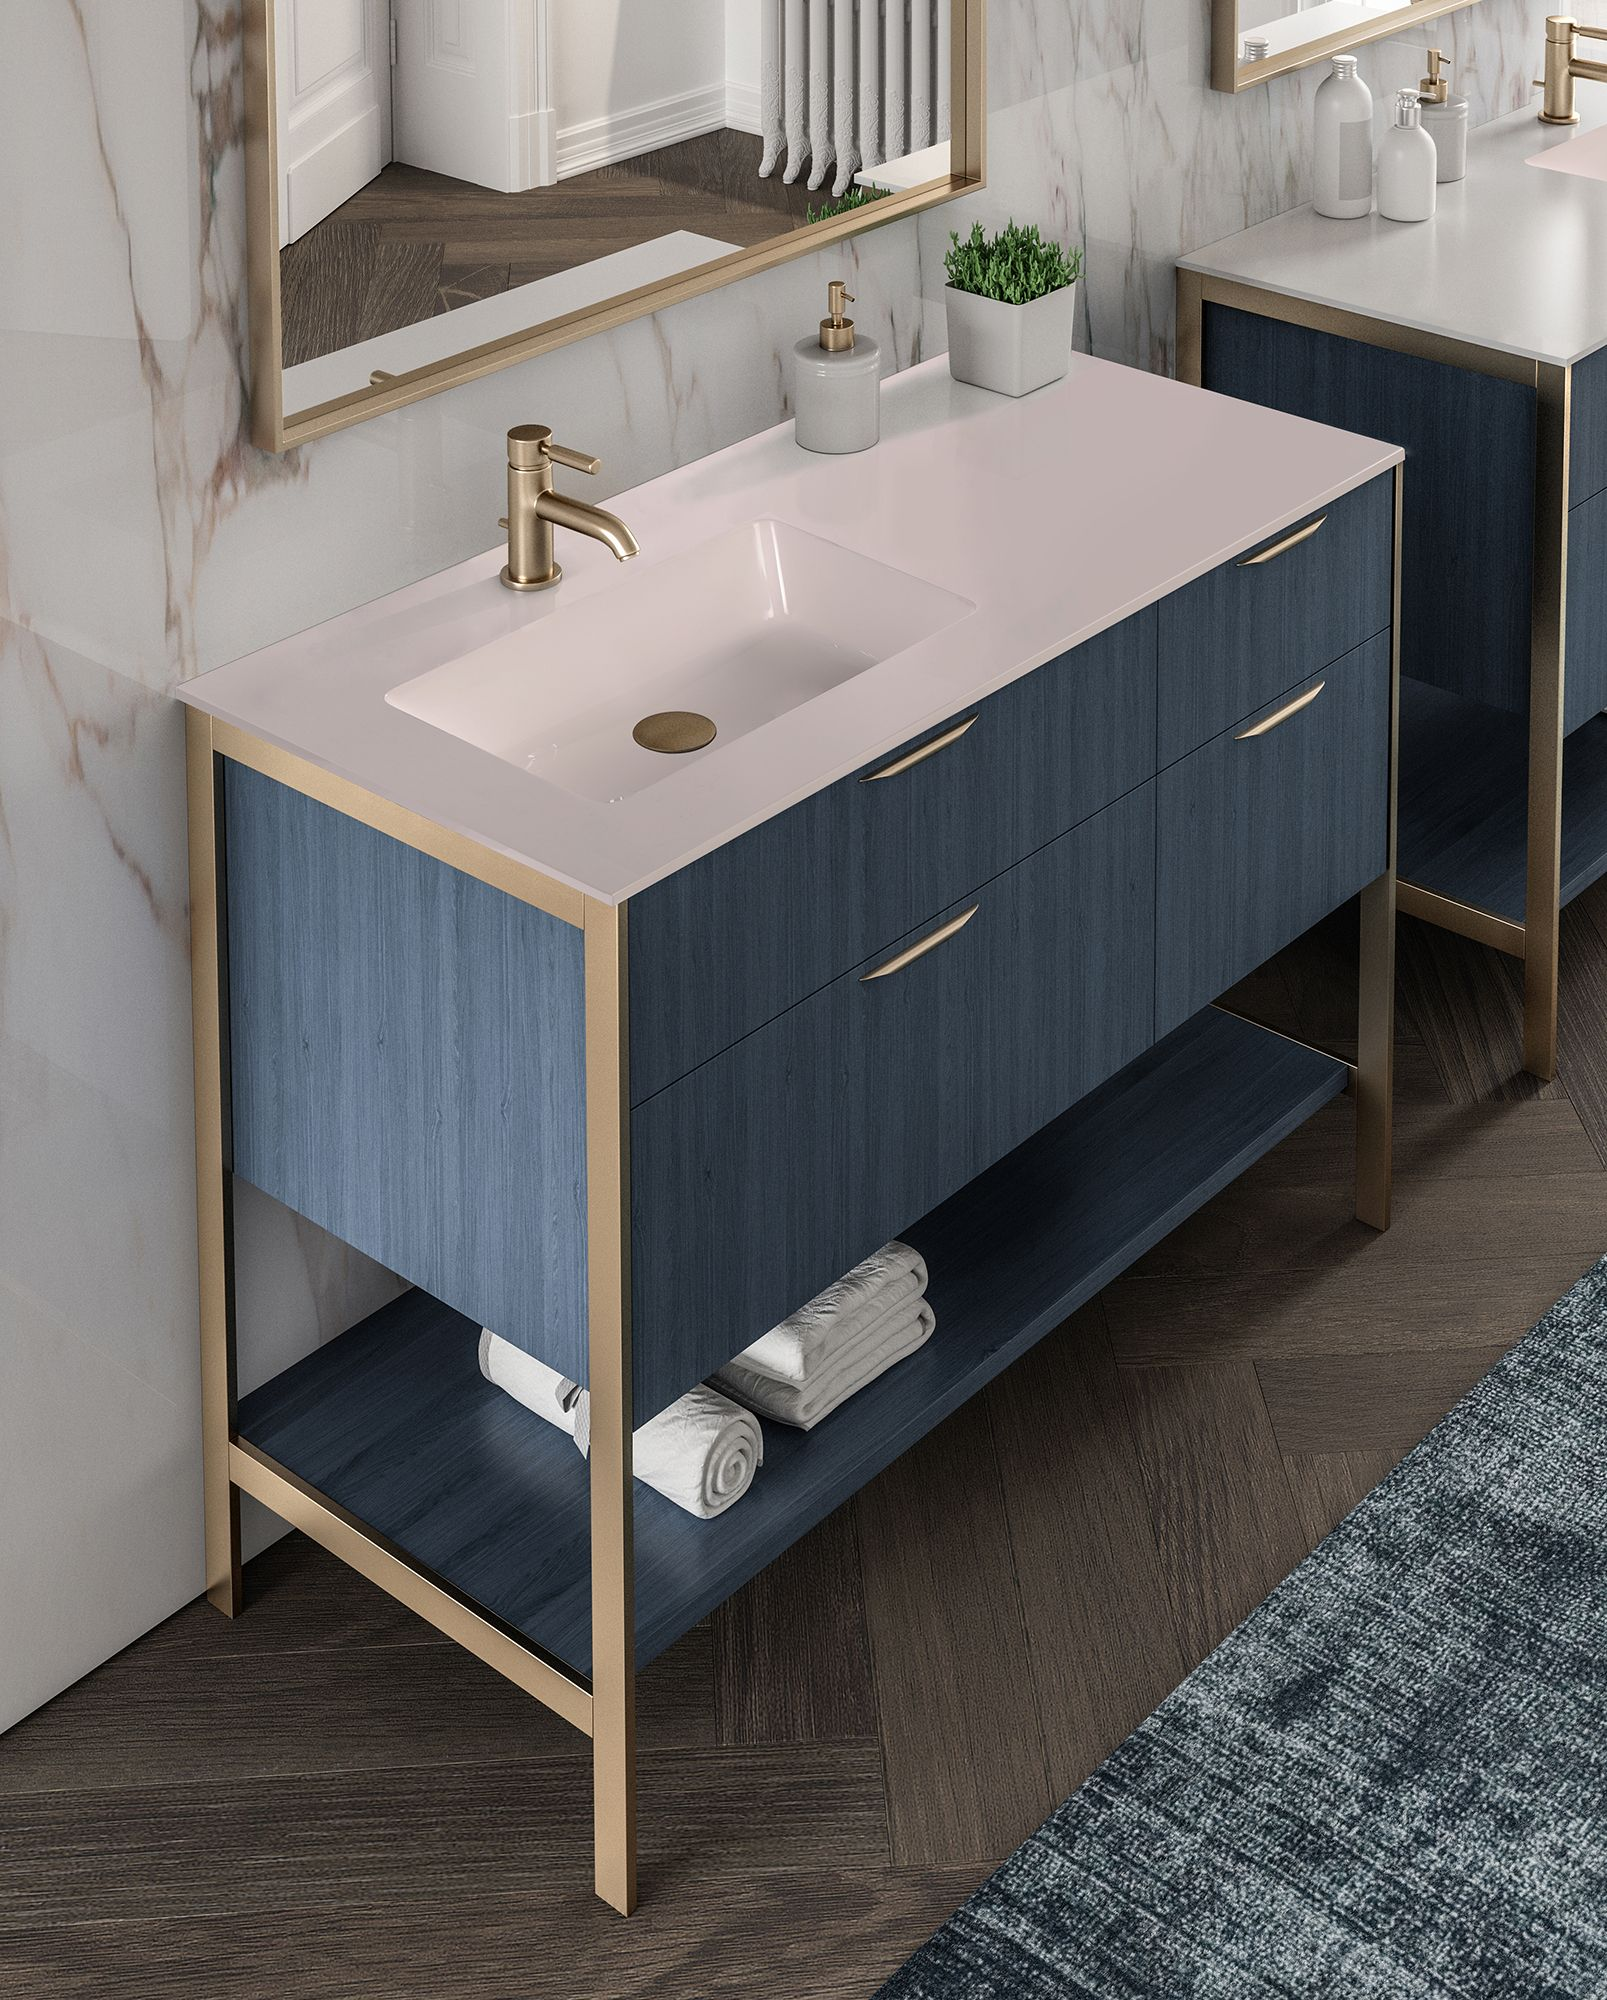 Kubitop Sink Navi Vanity Vanity Vanity Top Bathroom Design